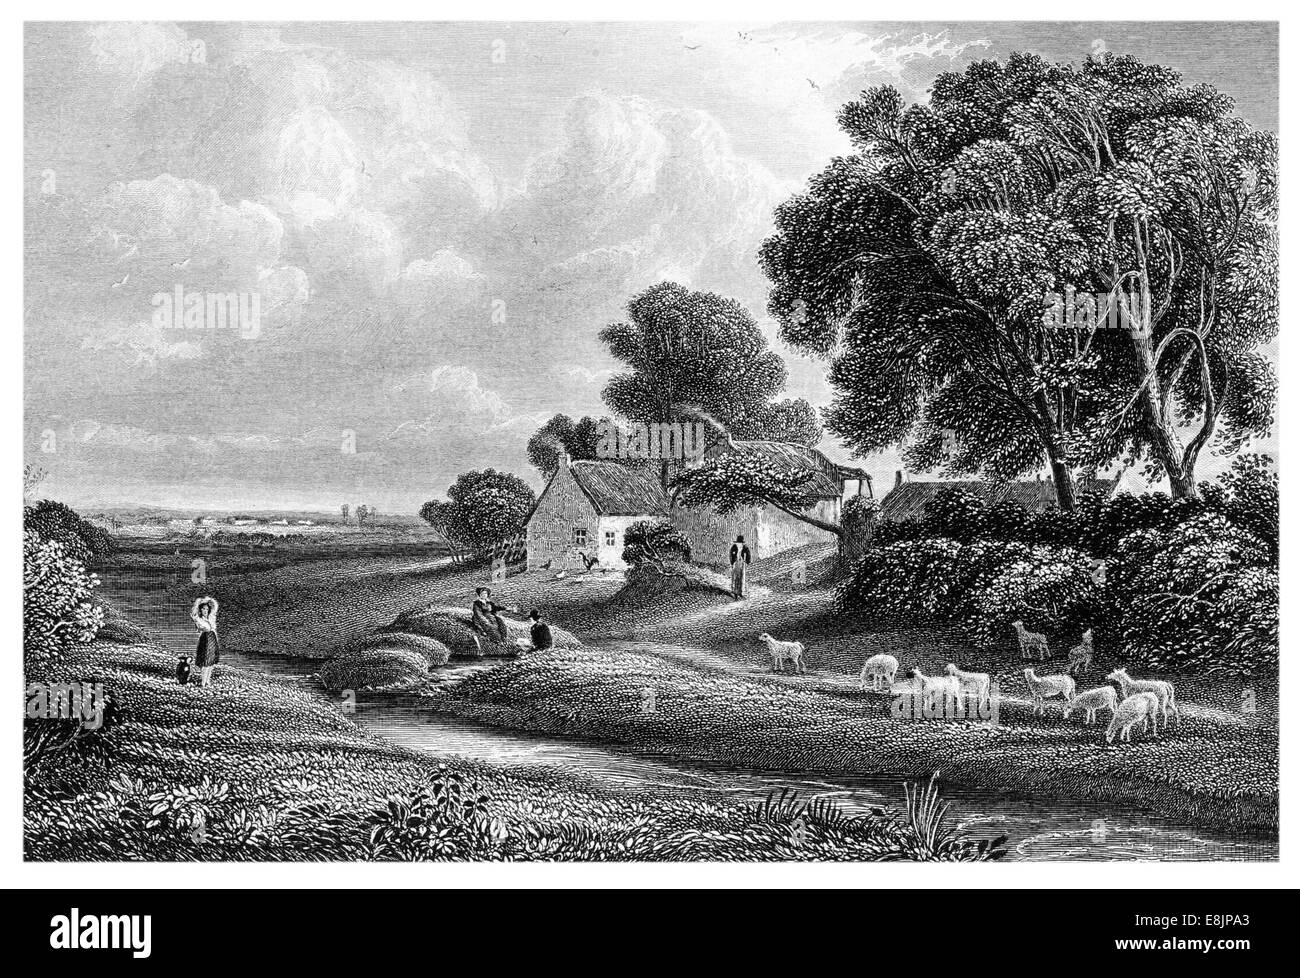 Brow A Hamlet near the Solway Firth Associated with Robert Burns last illness Dumfrieshire Scotland circa 1840 - Stock Image